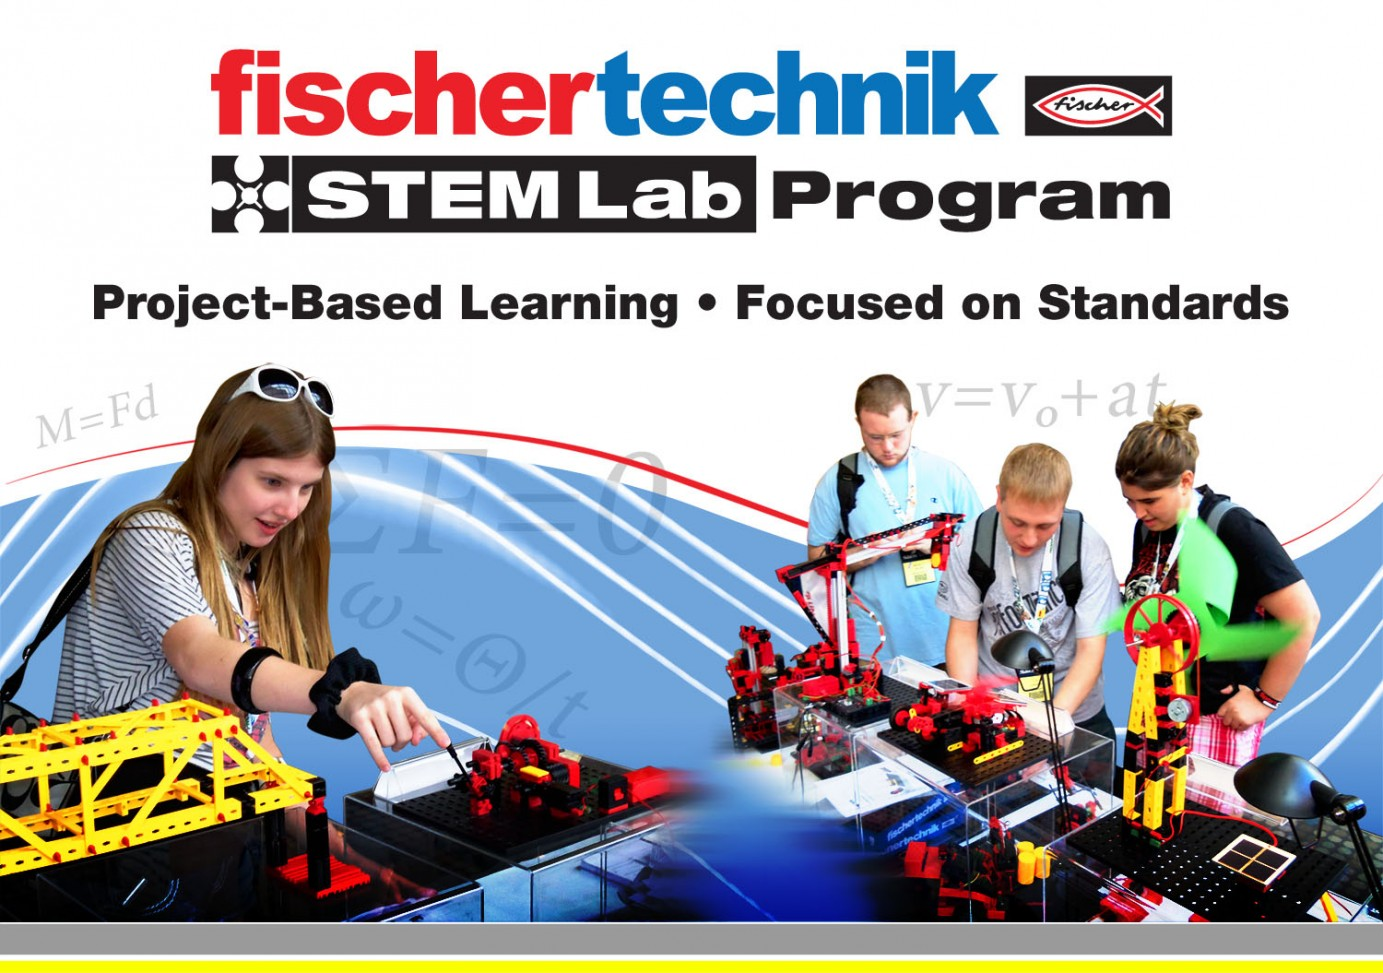 fischertechnik STEM Lab Program